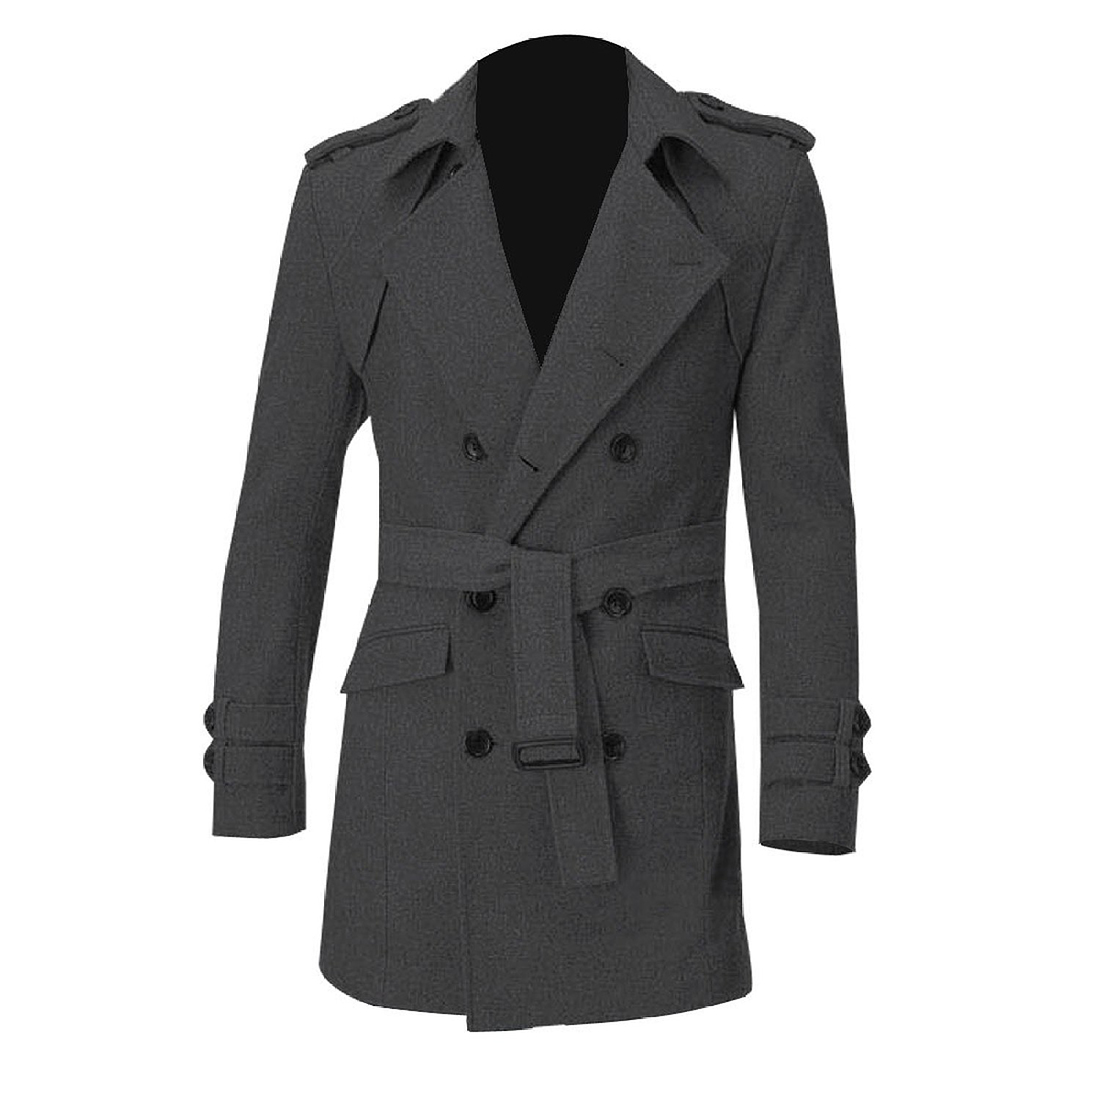 IMC Men Epaulets Slim Fit Double Breasted Belted Worsted Coat